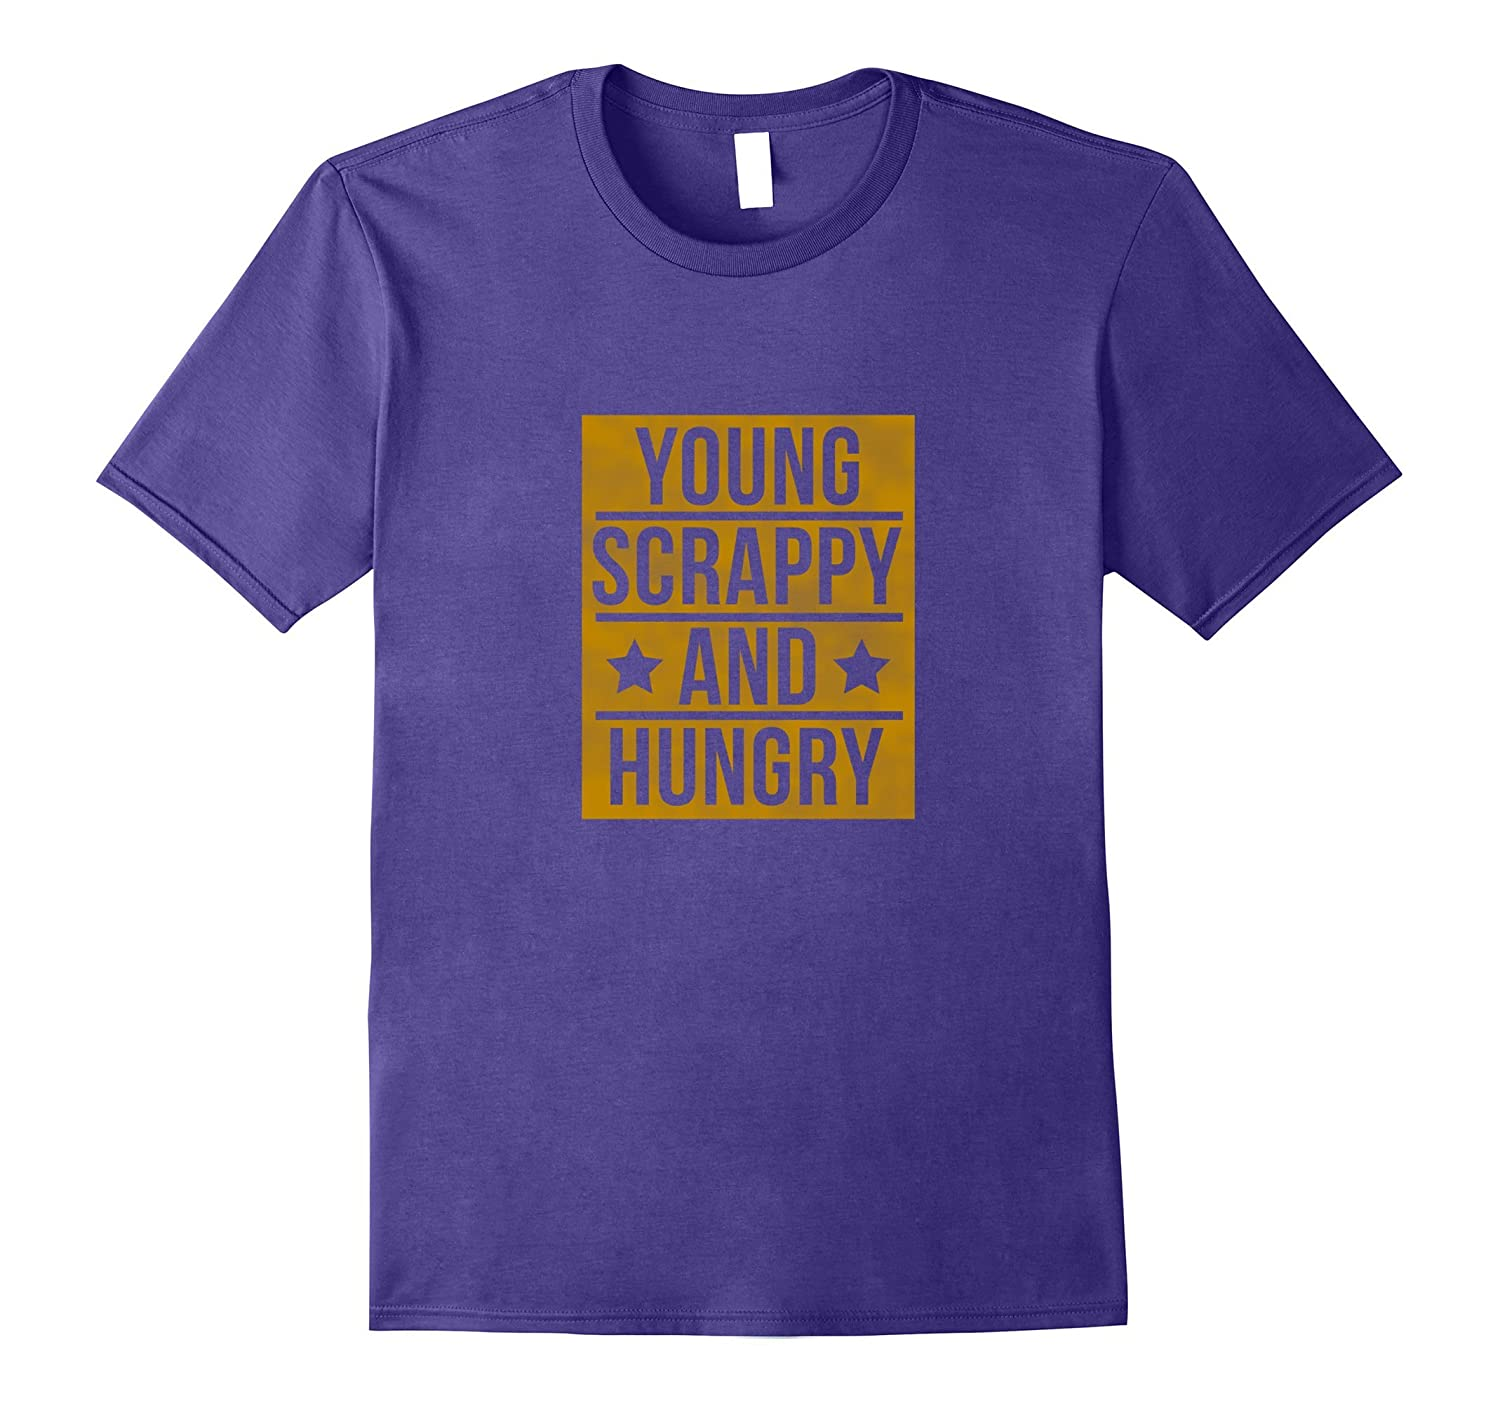 Young Scrappy and Hungry T-Shirt - Cool T Shirt For Kids-T-Shirt